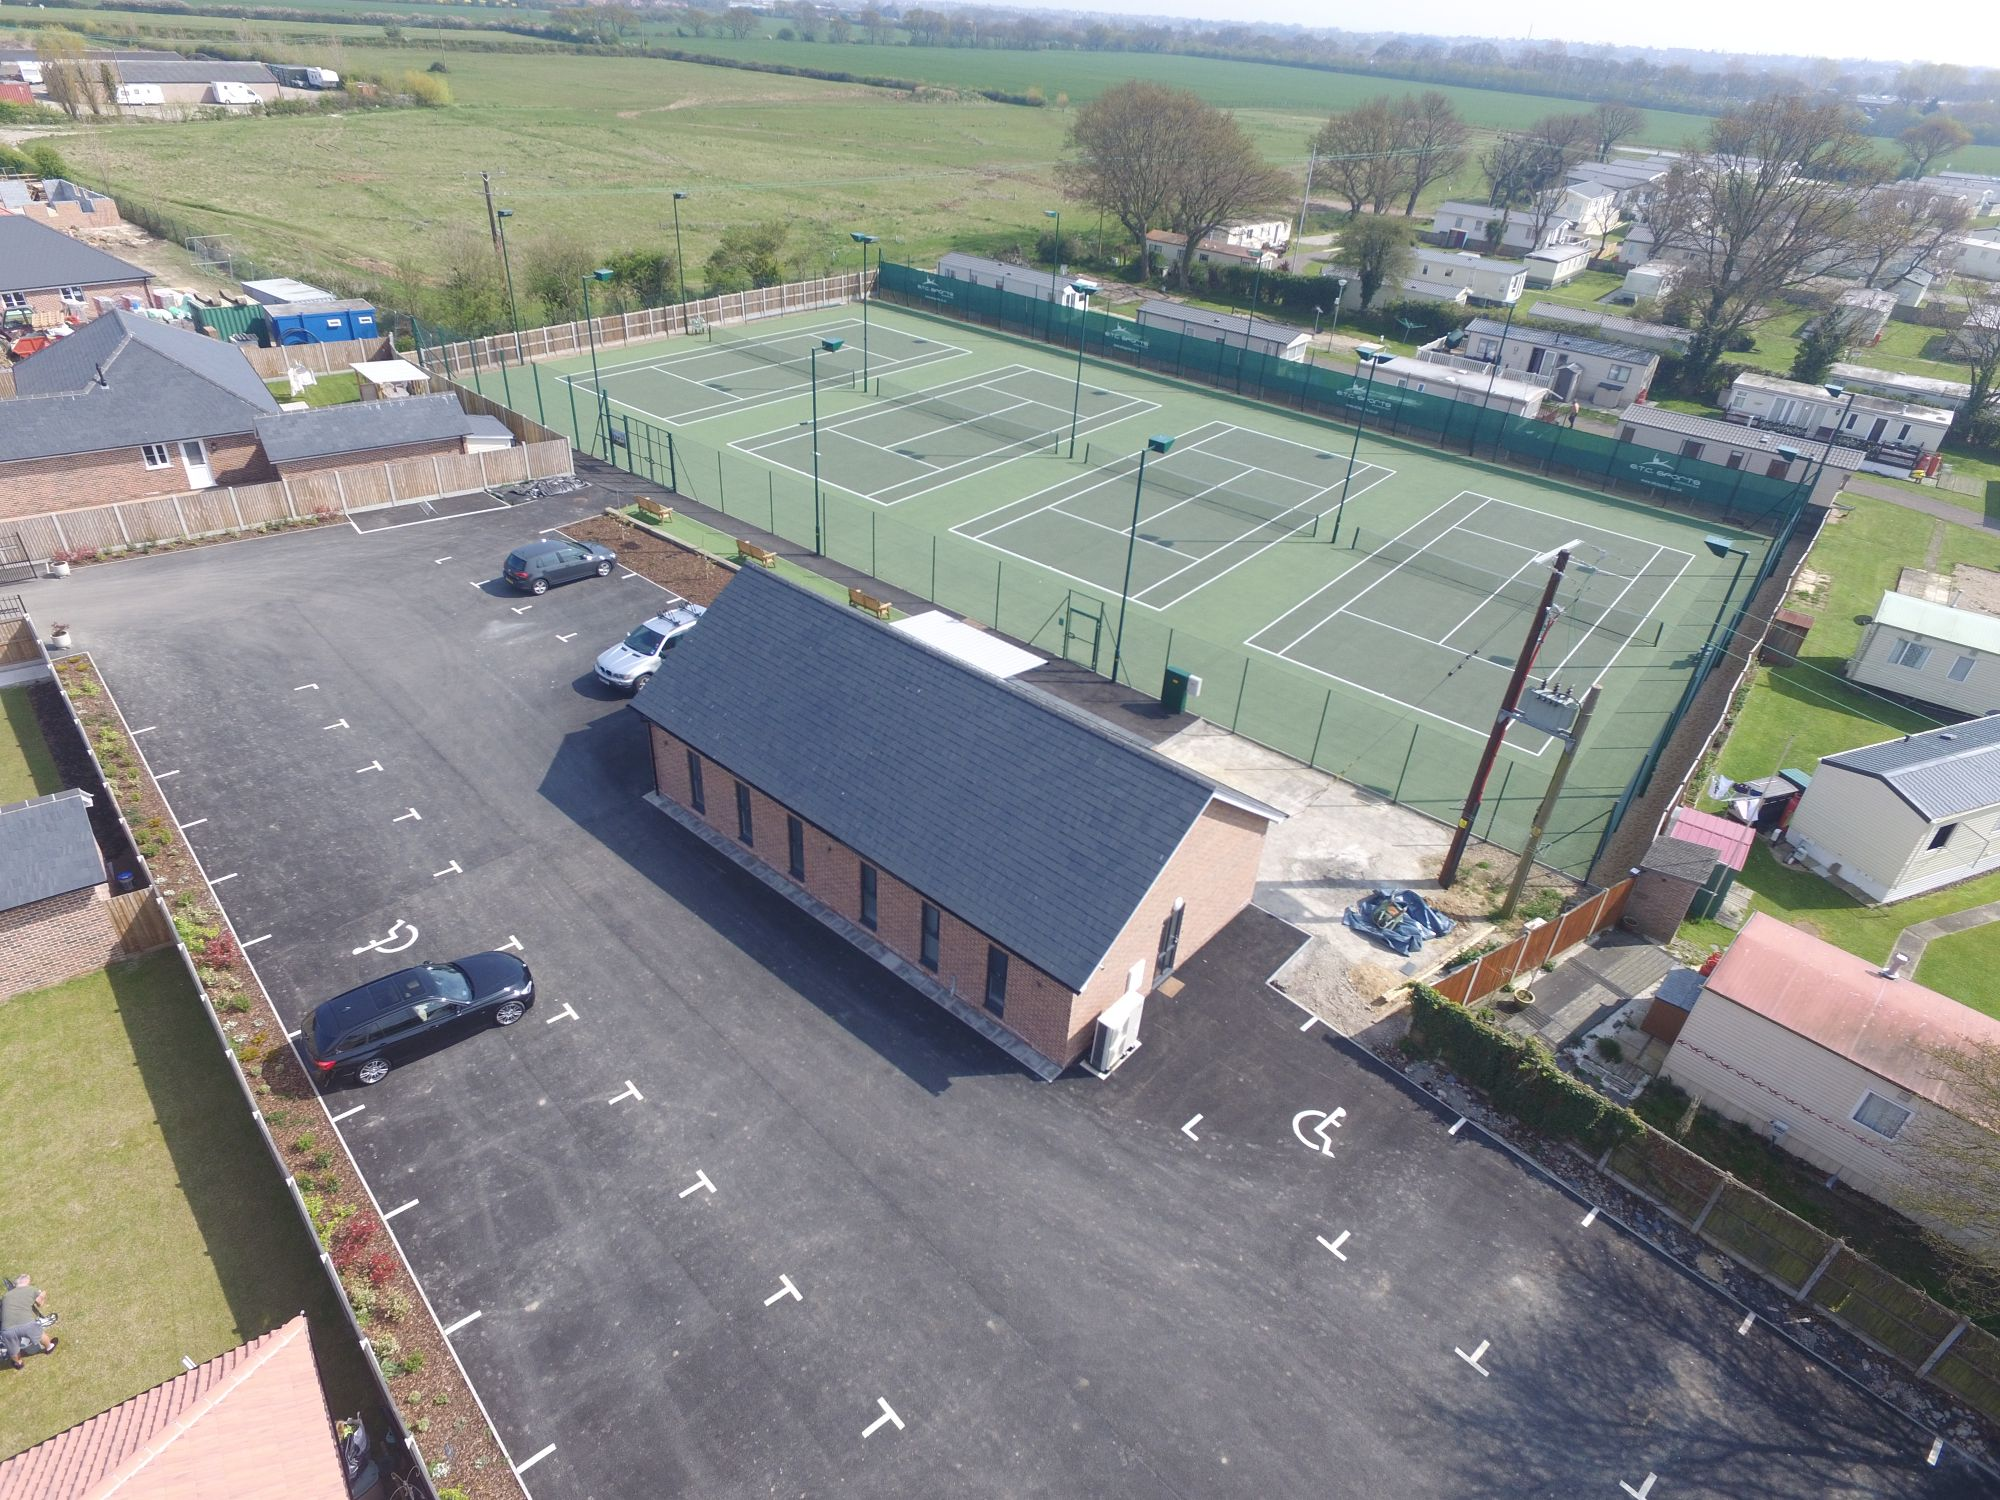 We constructed these asphalt tennis courts with full accessibility in mind for the convenience of members and residents.